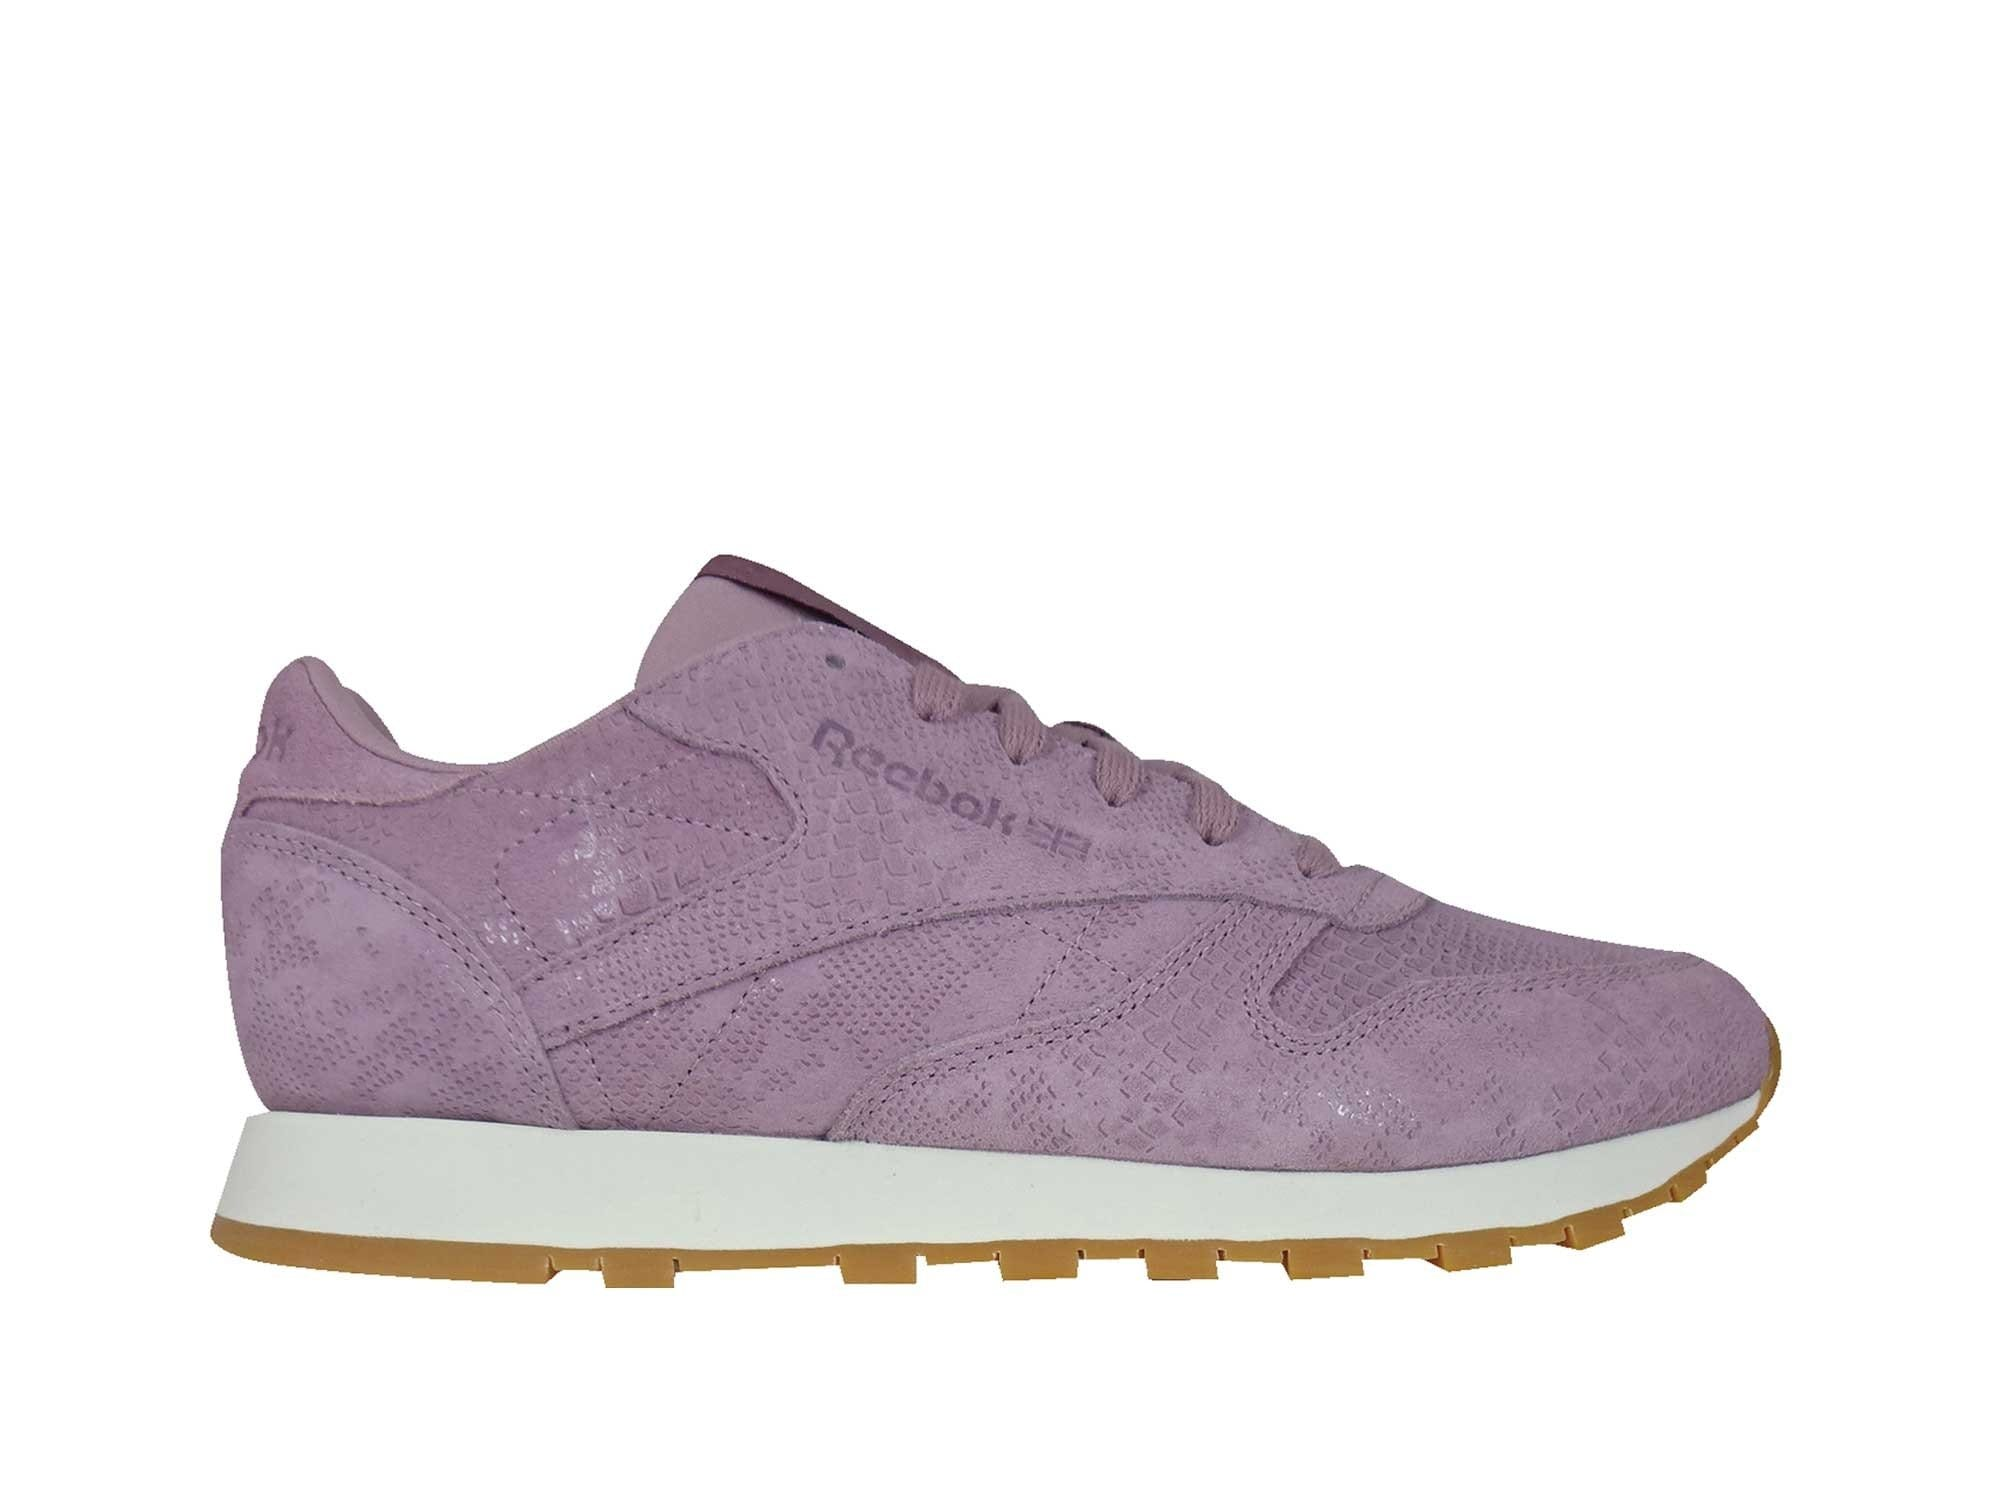 Zapatilla Reebok Cl Leather Mujer